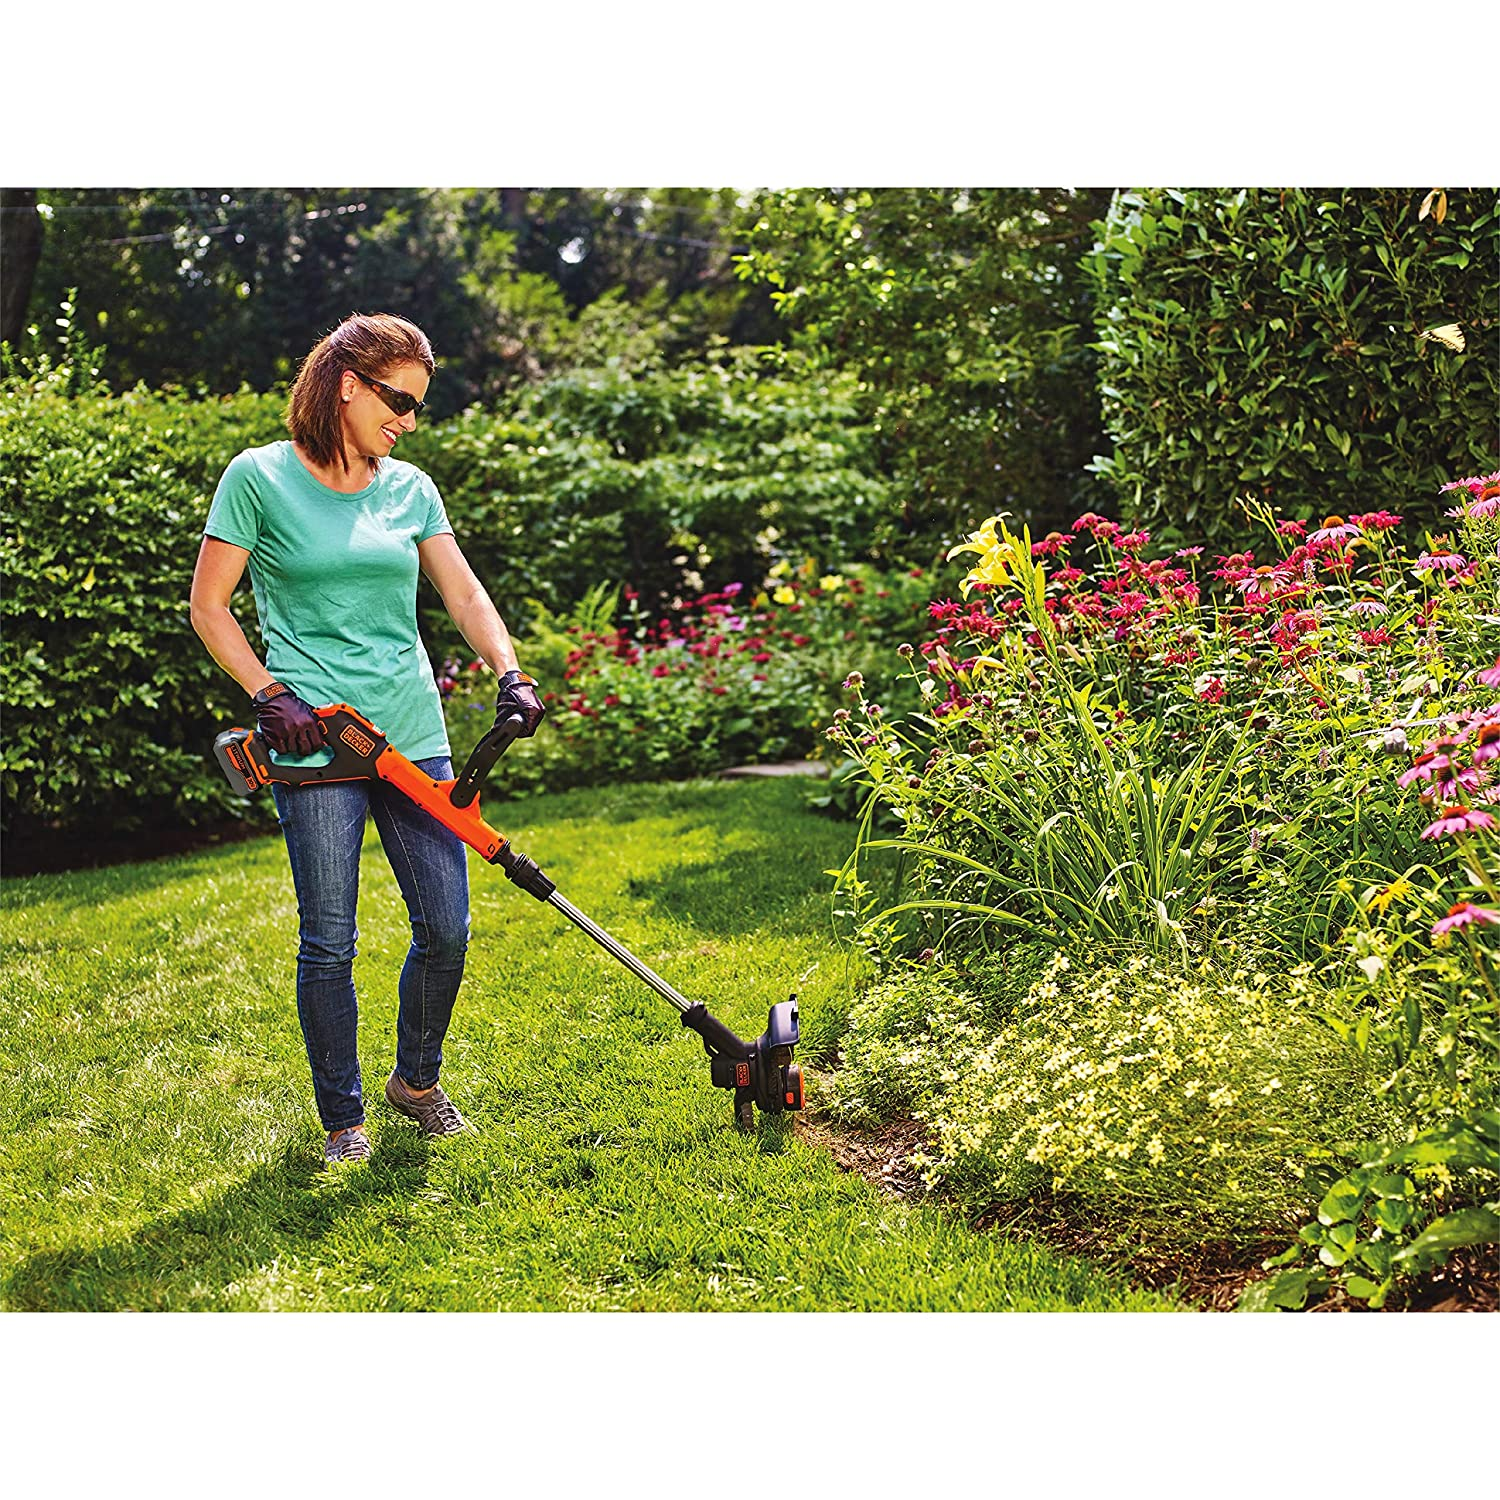 BLACK + DECKER LSTE523 20V Max Lithium POWERCOMMAND Easy Feed String Trimmer/Edger